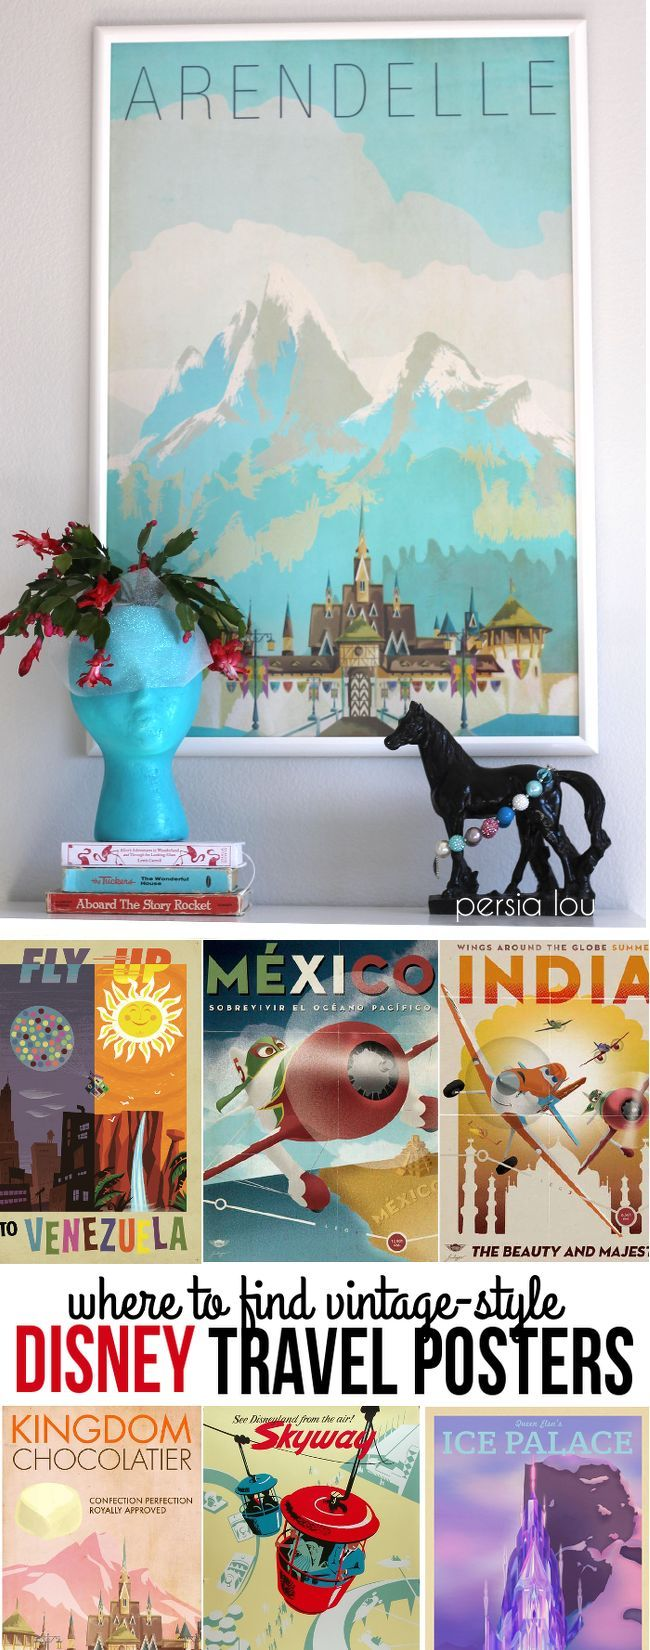 Where to Find Vintage Style Disney Posters is part of Disney home decor - Find out where to find gorgeous vintagestyle Disney posters to decorate your home in style  Some of these awesome prints are even available for free! You can find awesome travel poster style designs for every room in your home!